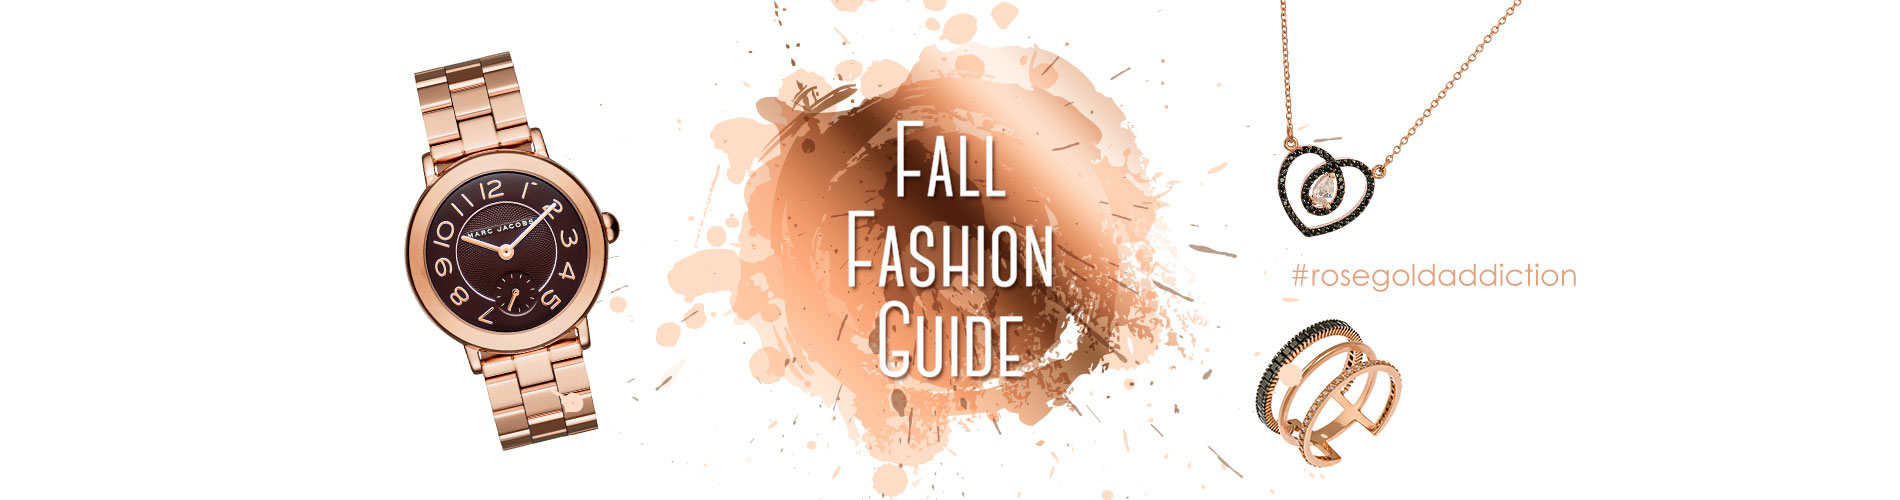 Fall Fashion Guide 2016